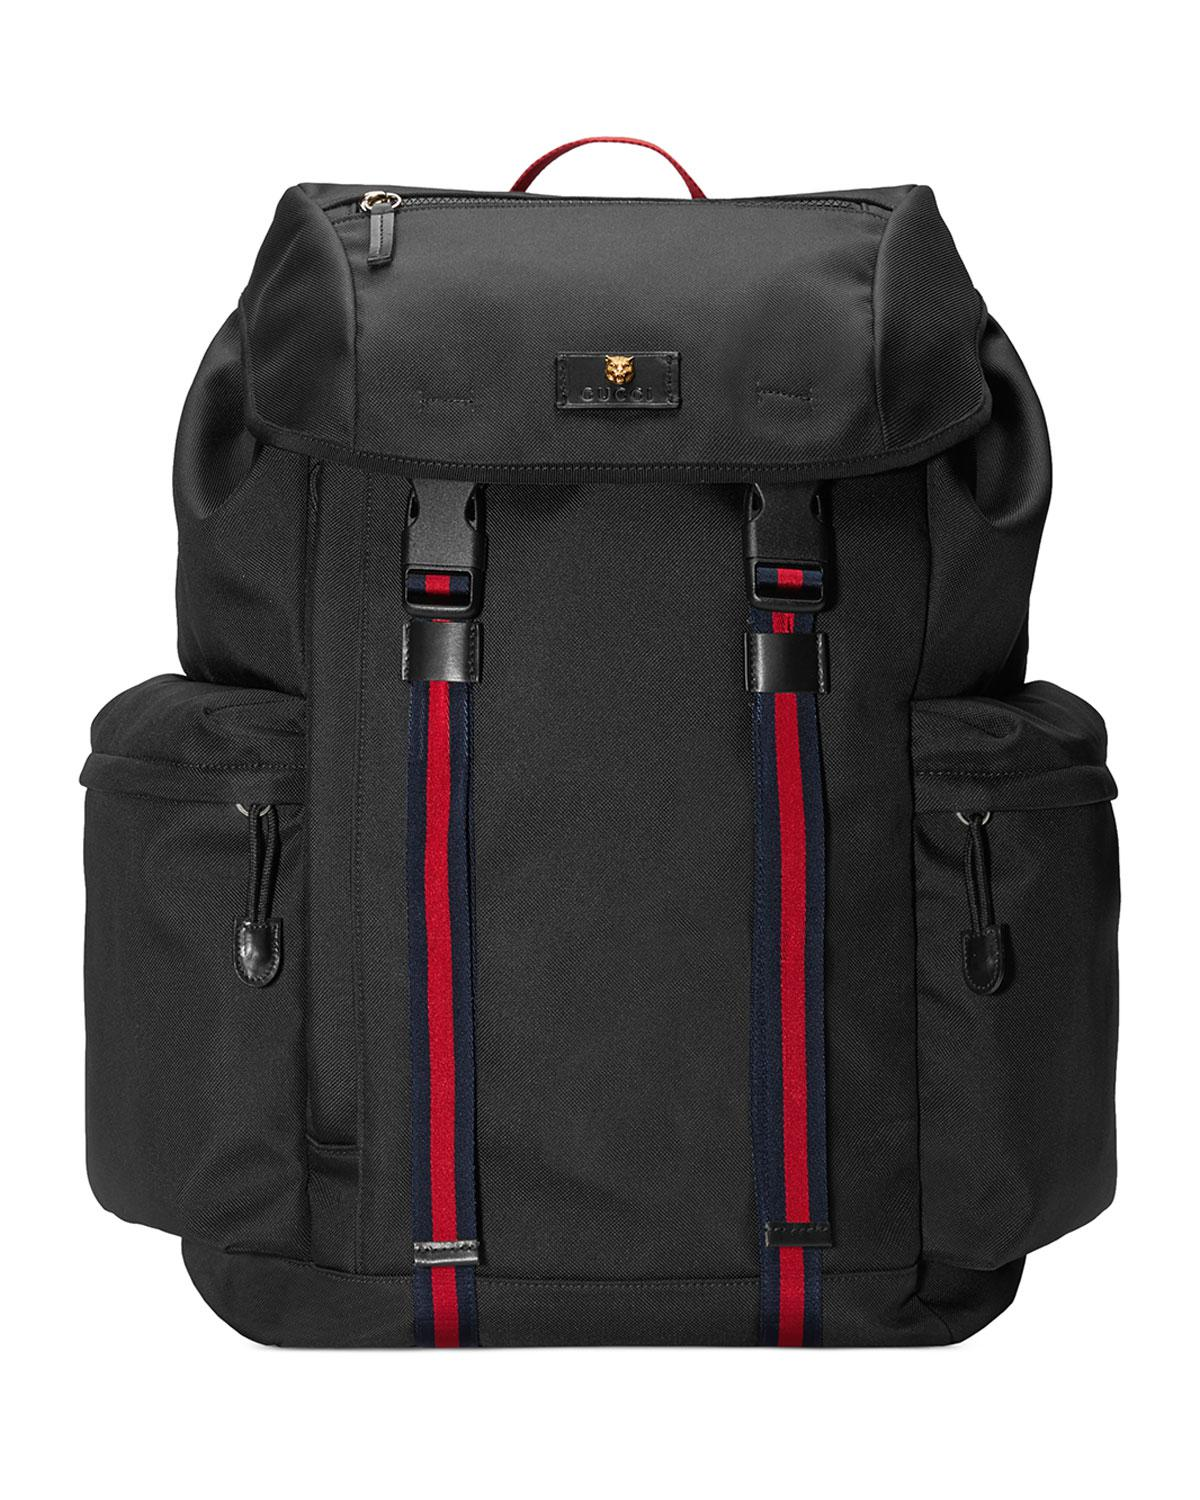 663f8b4c8ac0 Lyst - Gucci Men s Techno-canvas Flap Backpack in Black for Men